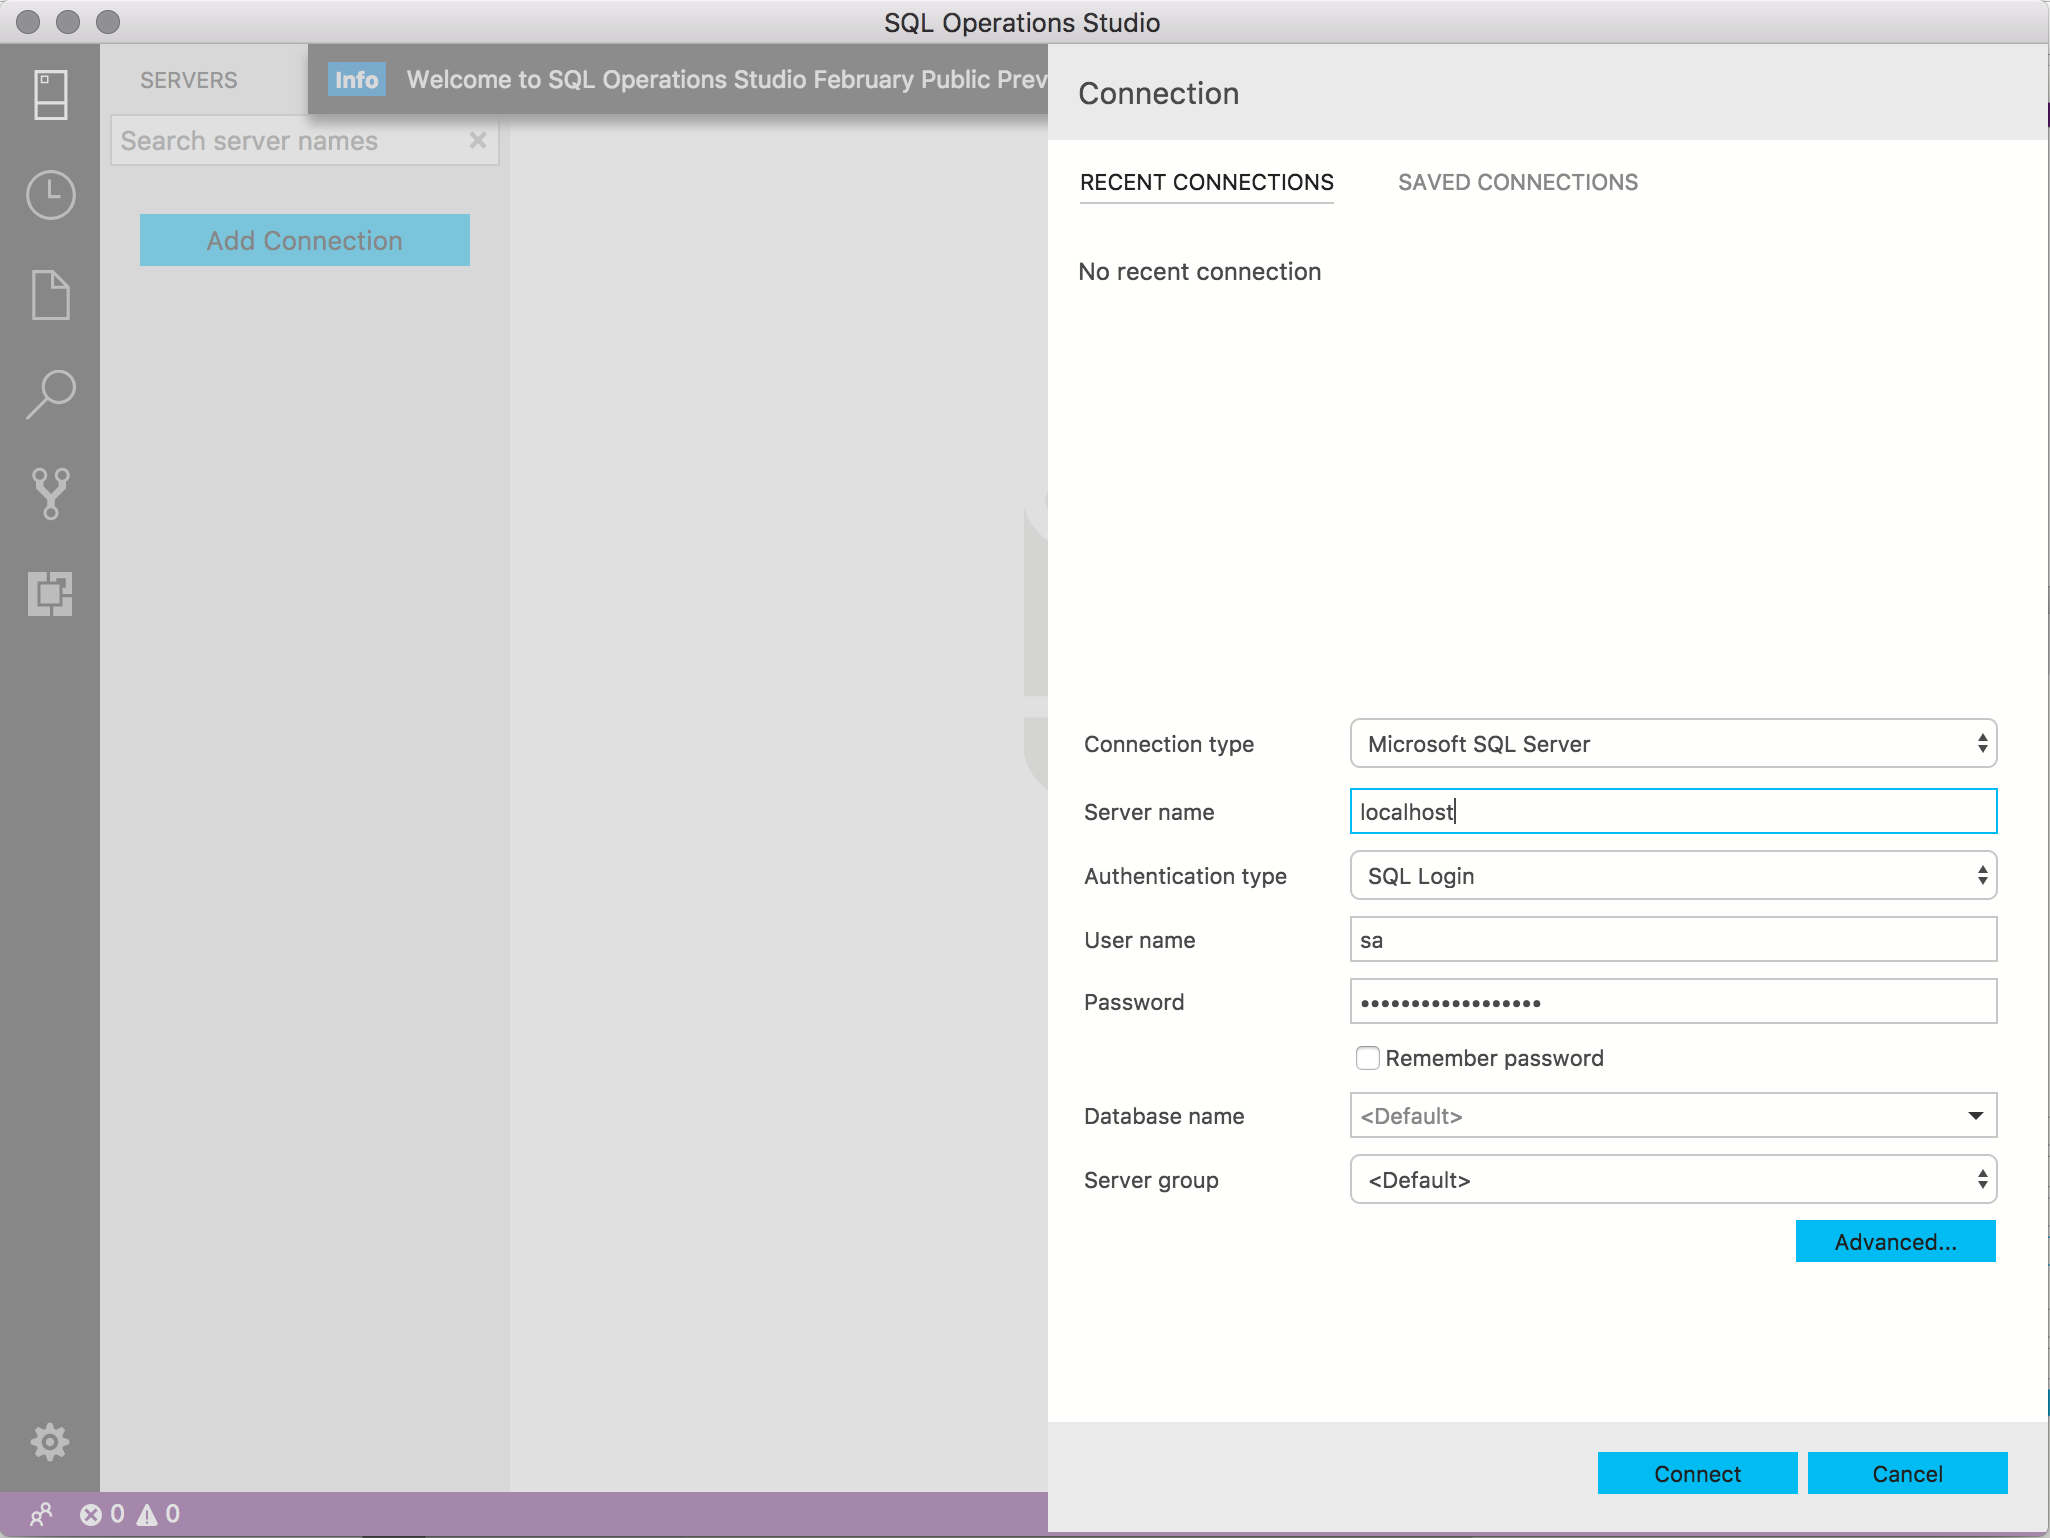 Screenshot of connecting to SQL Server with SQL Operations Studio (SQLOPS)